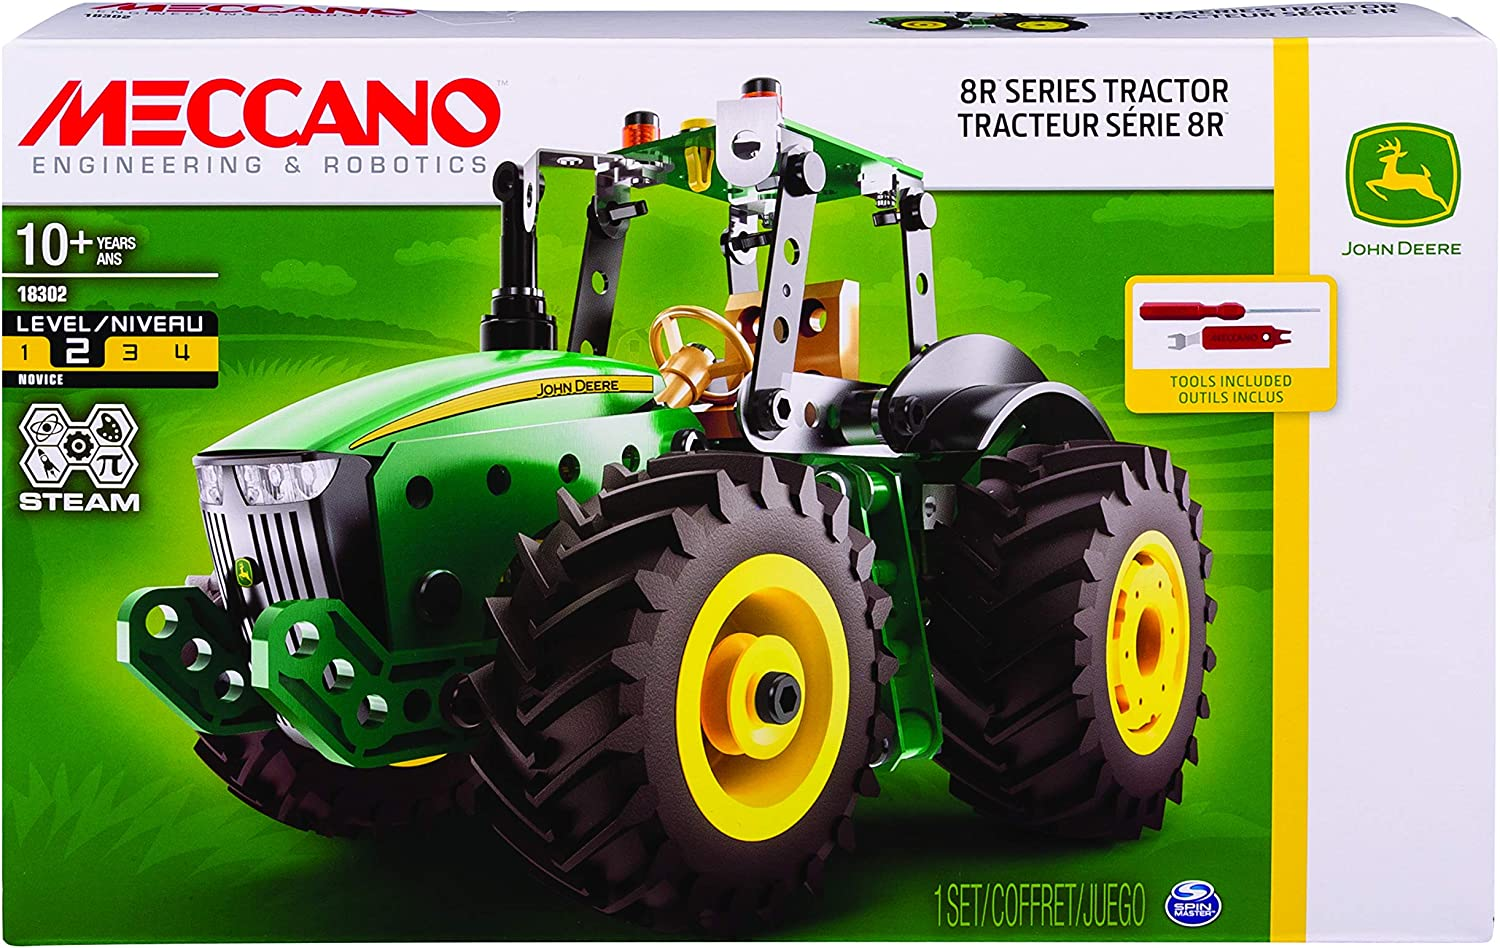 Meccano by Erector John Deere 8R Series Tractor Stem Building Kit with Working Wheels, for Ages 10 and Up